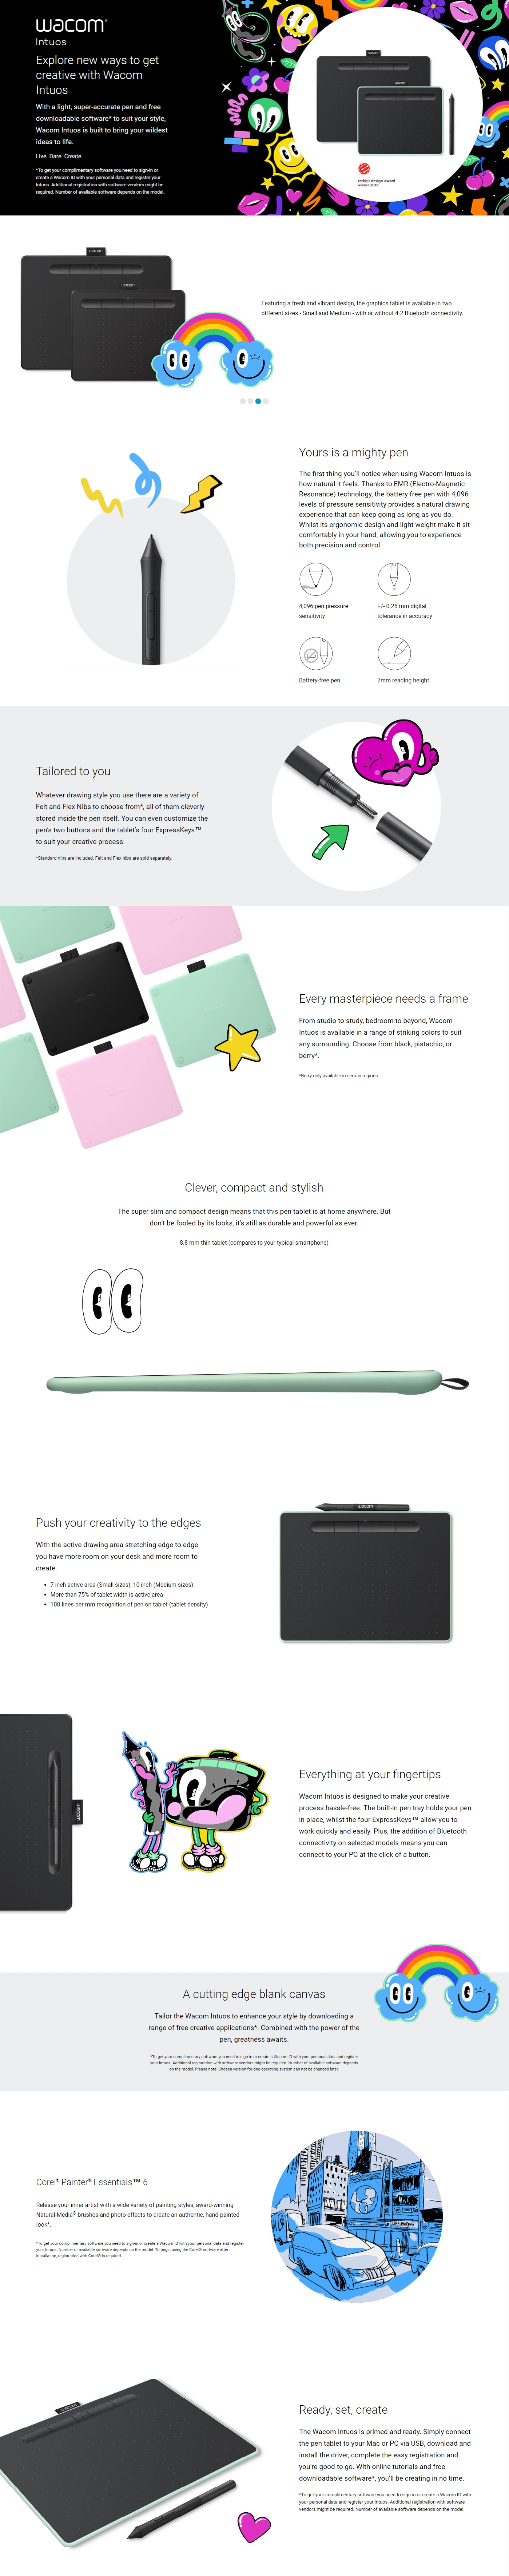 A large marketing image providing additional information about the product Wacom Intuos Small Bluetooth Drawing Tablet - Black - Additional alt info not provided